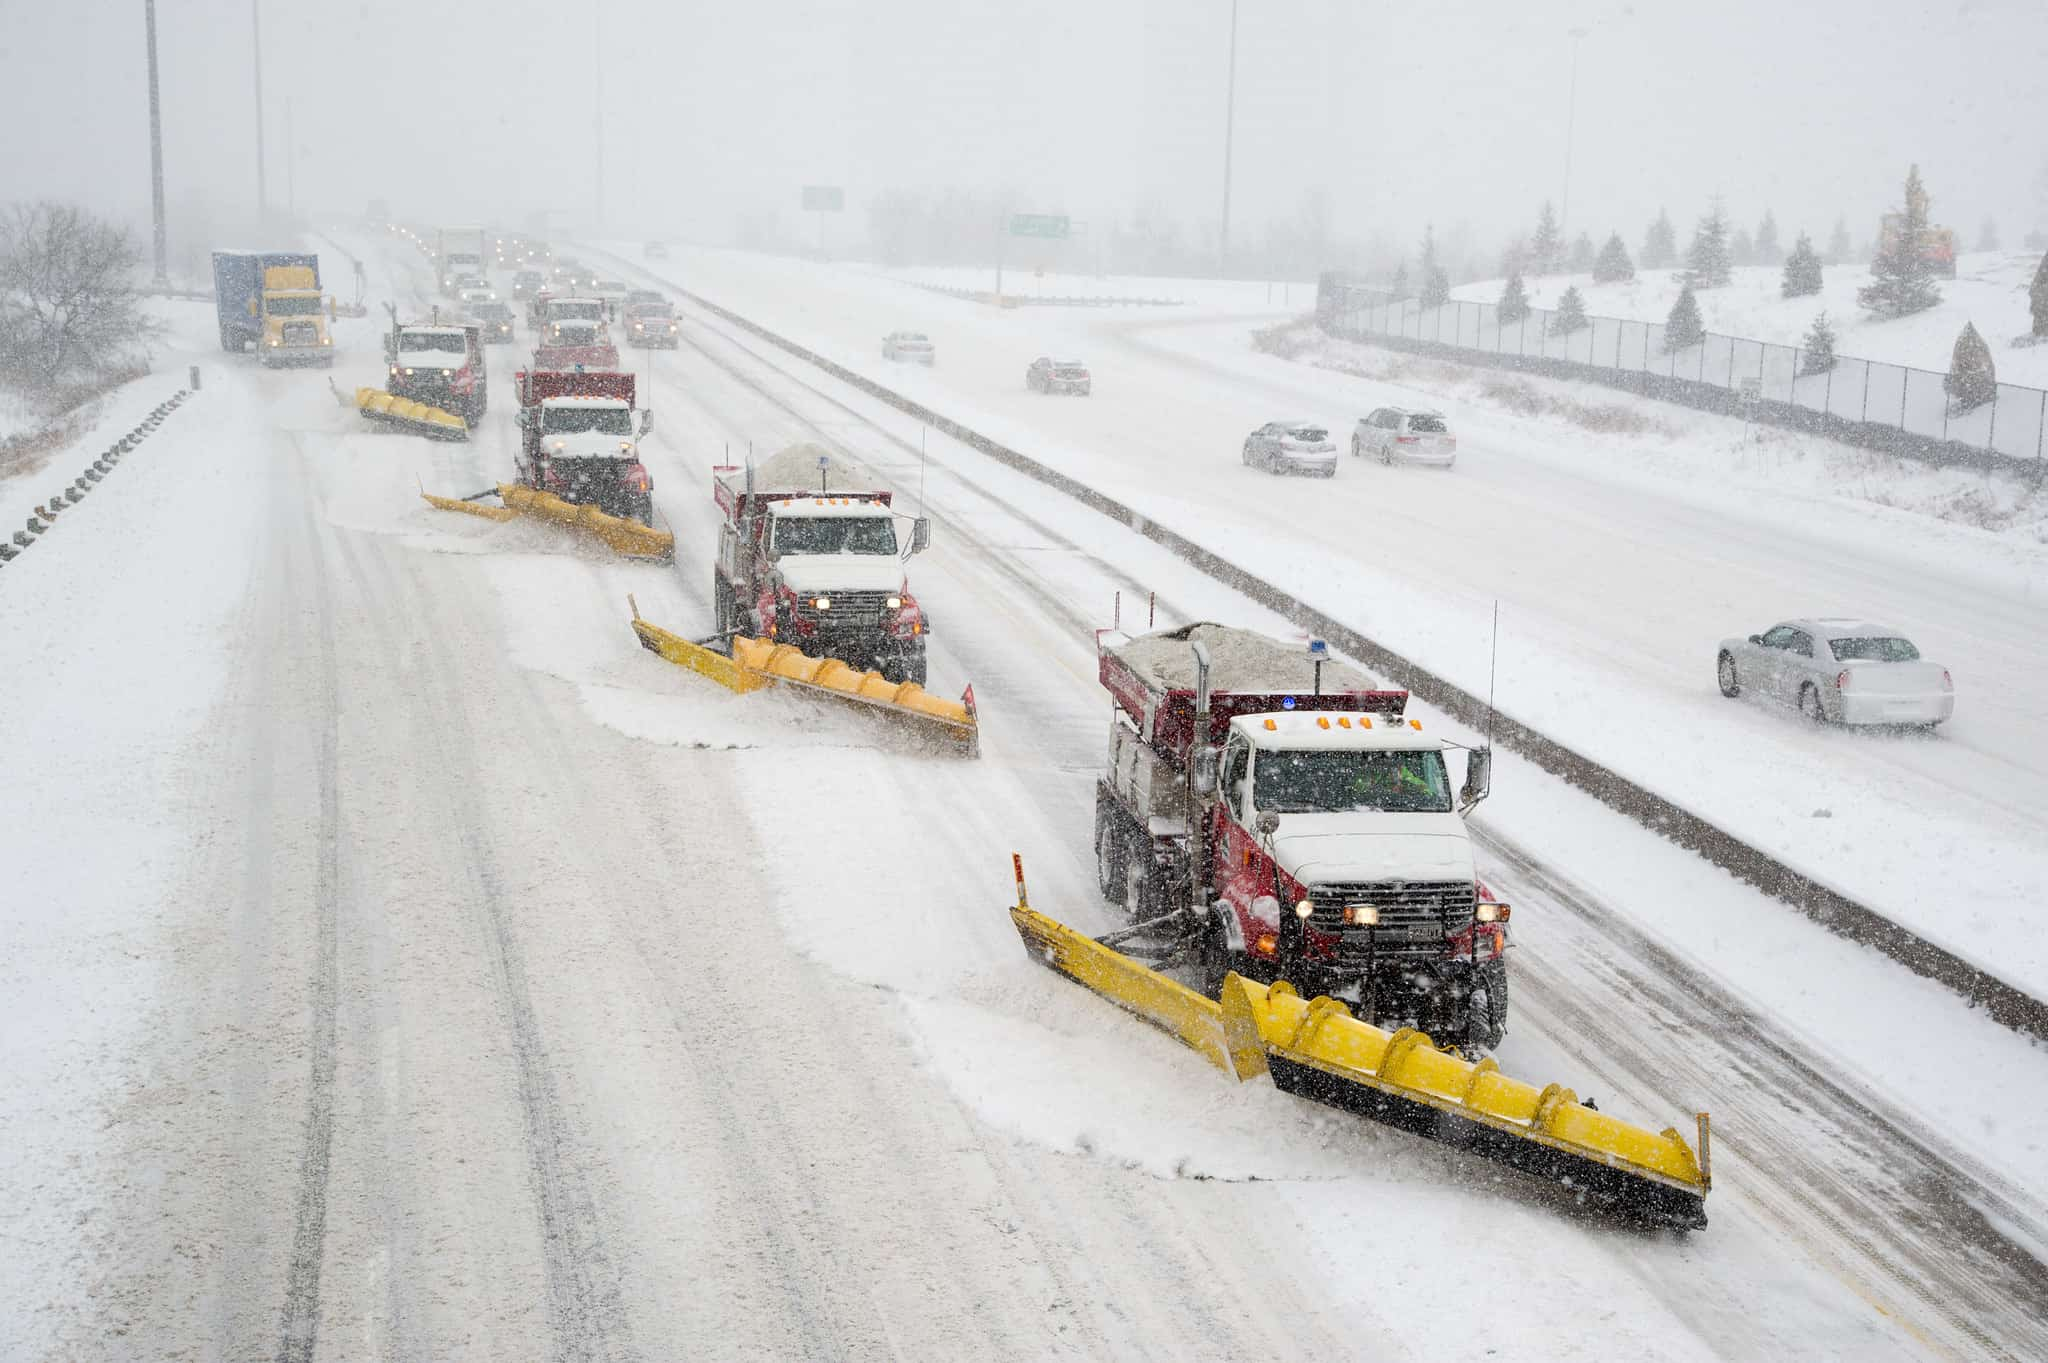 Snowplows on a Toronto freeway during winter